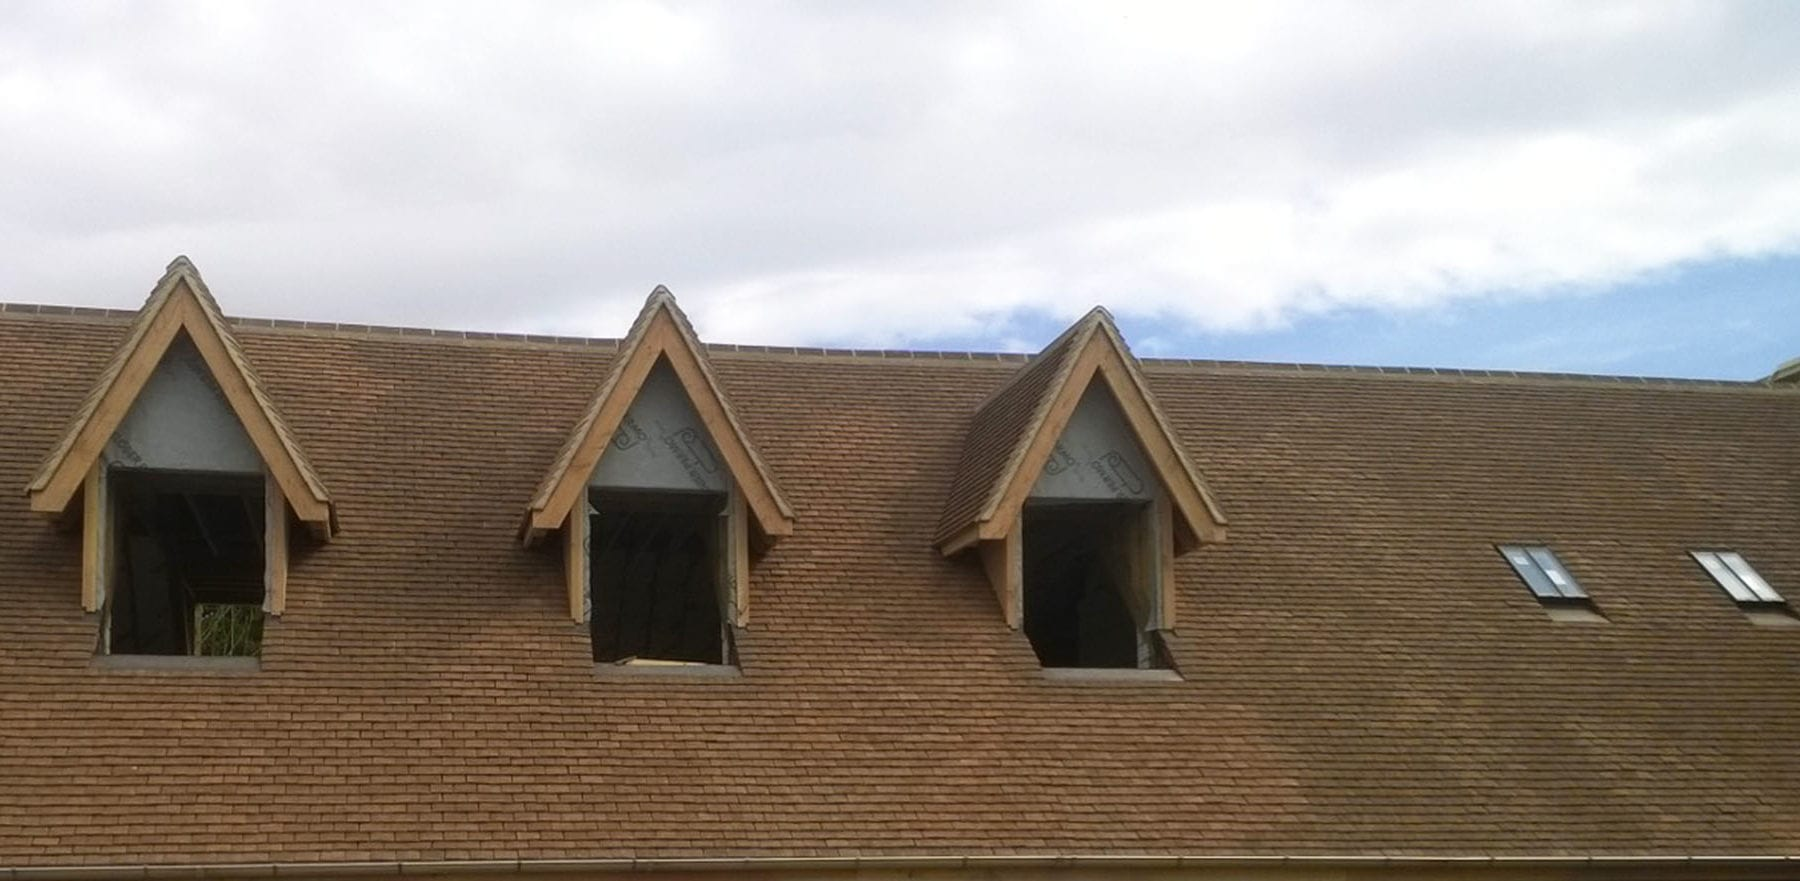 Lifestiles - Handcrafted Foxearth Clay Roof Tiles - Oxford, England 2